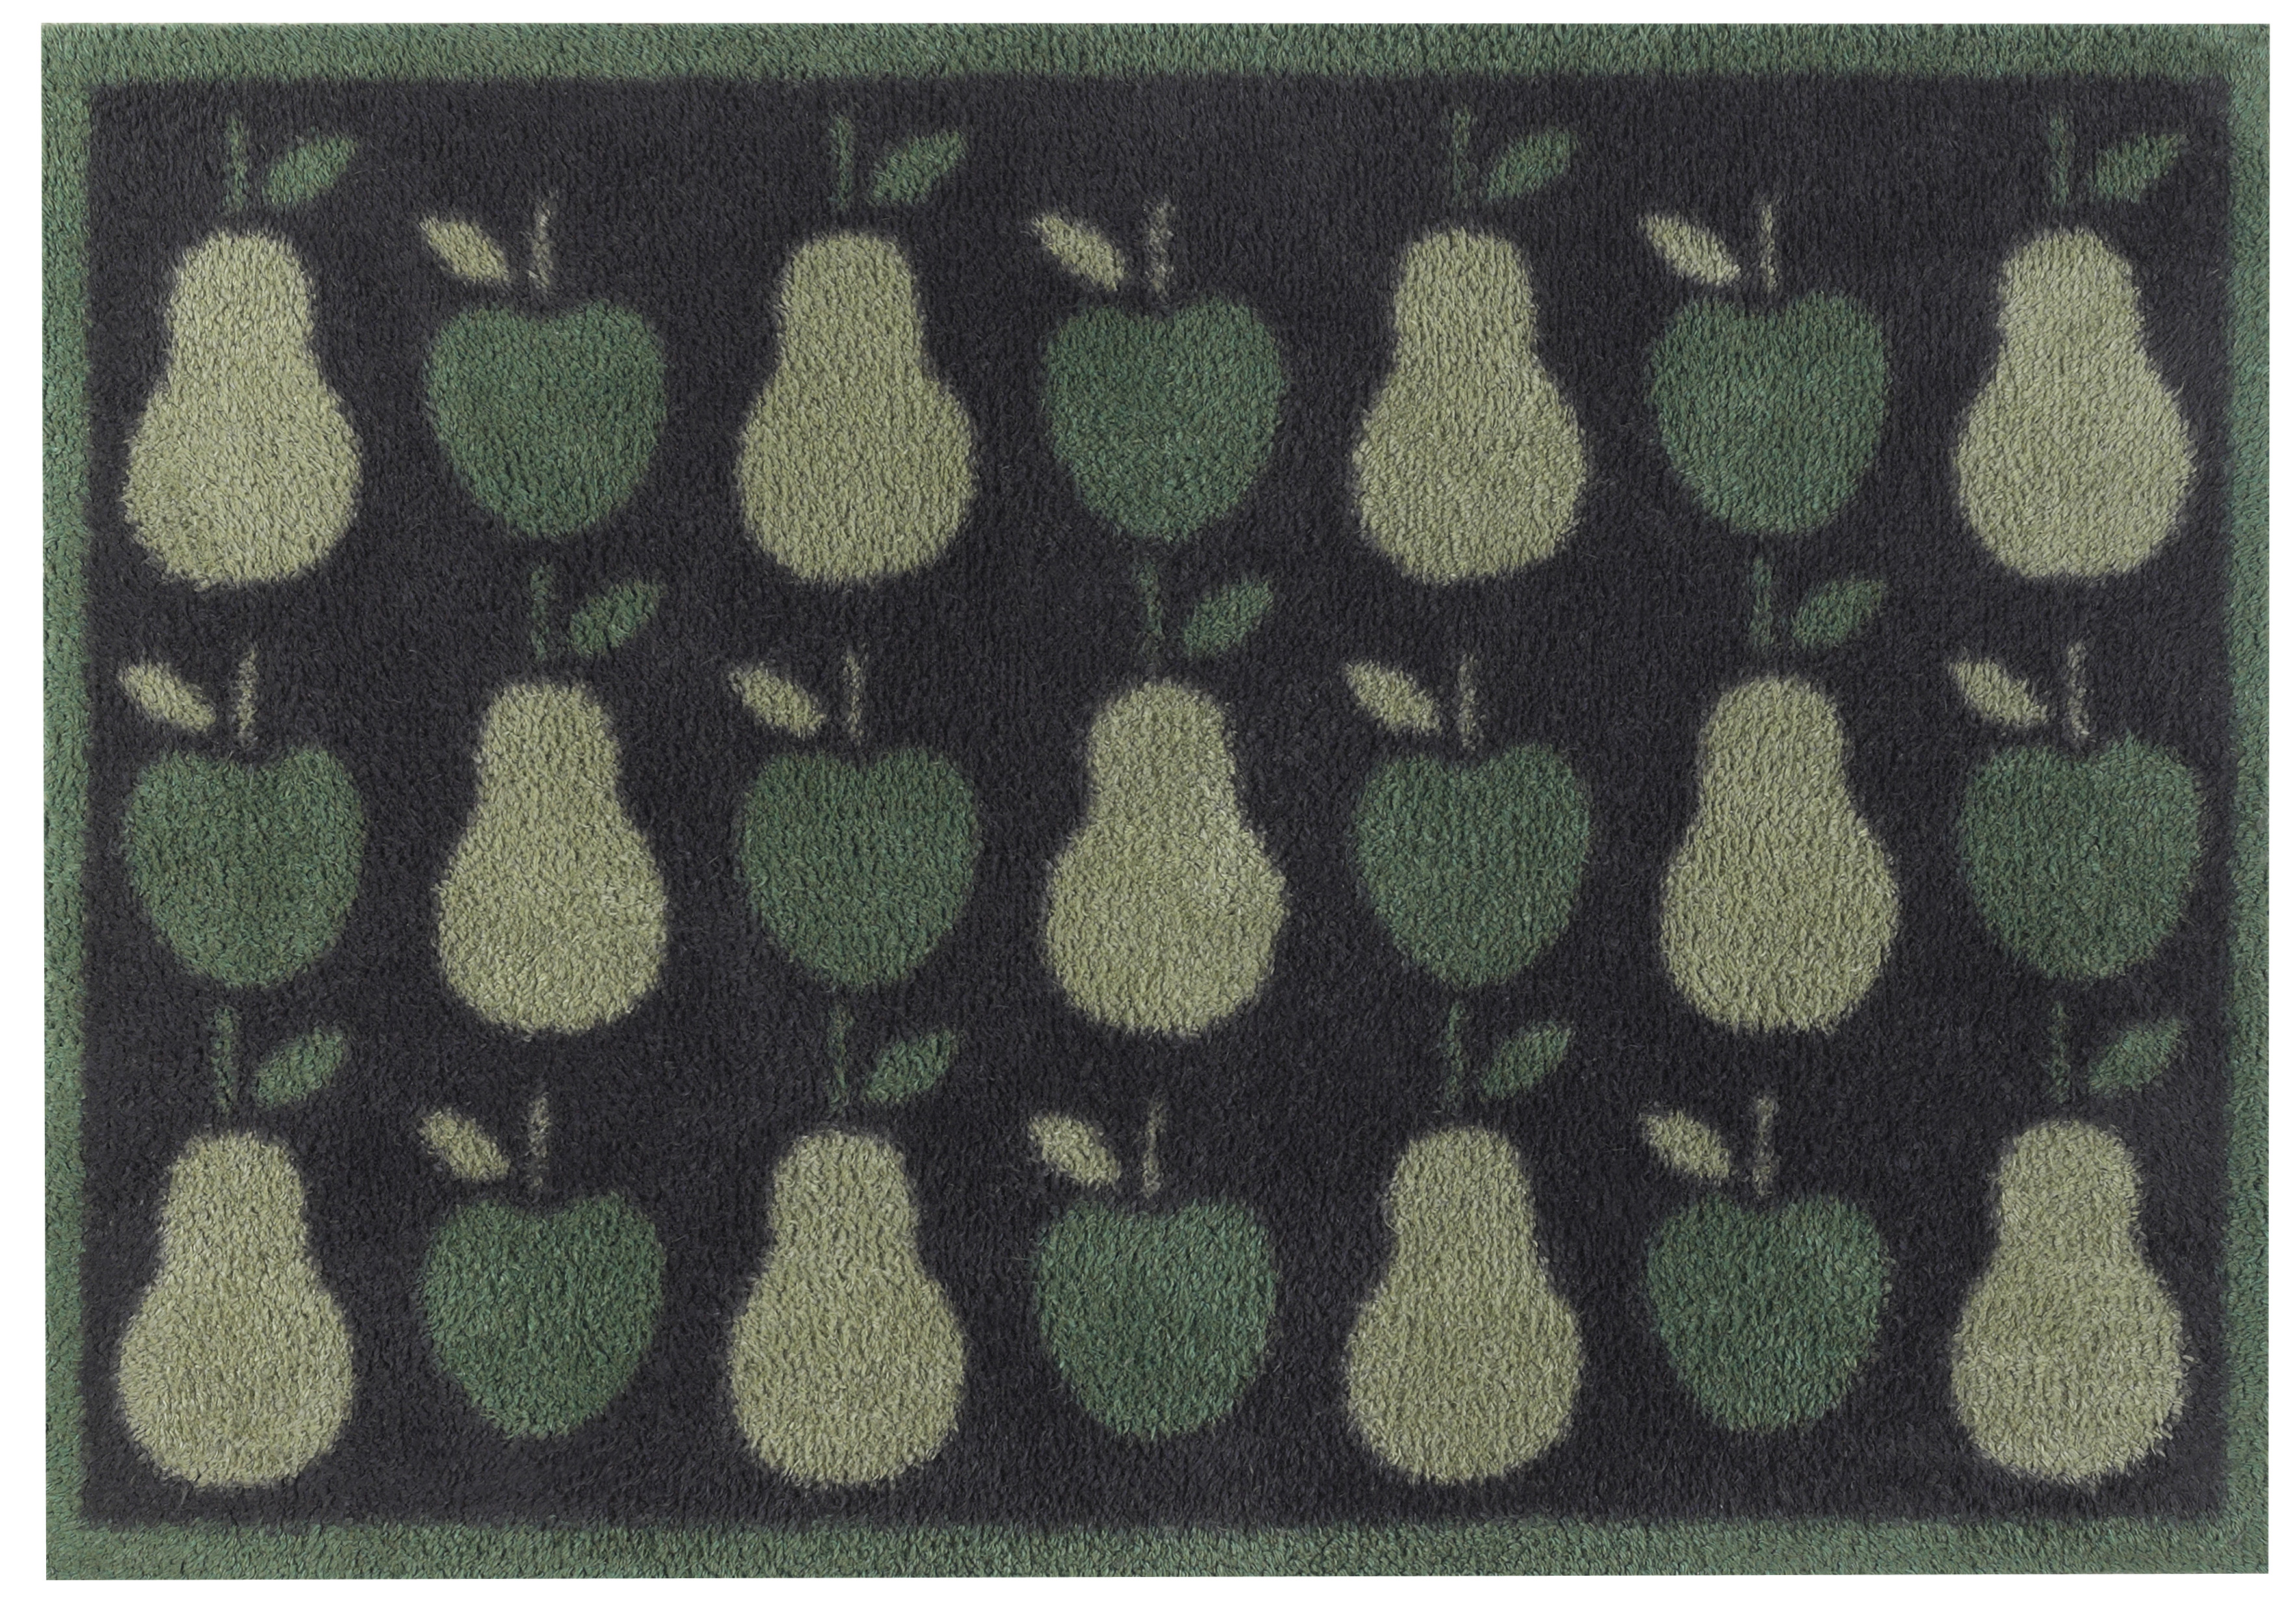 Apples and Pears - www.turtlemat.co.uk